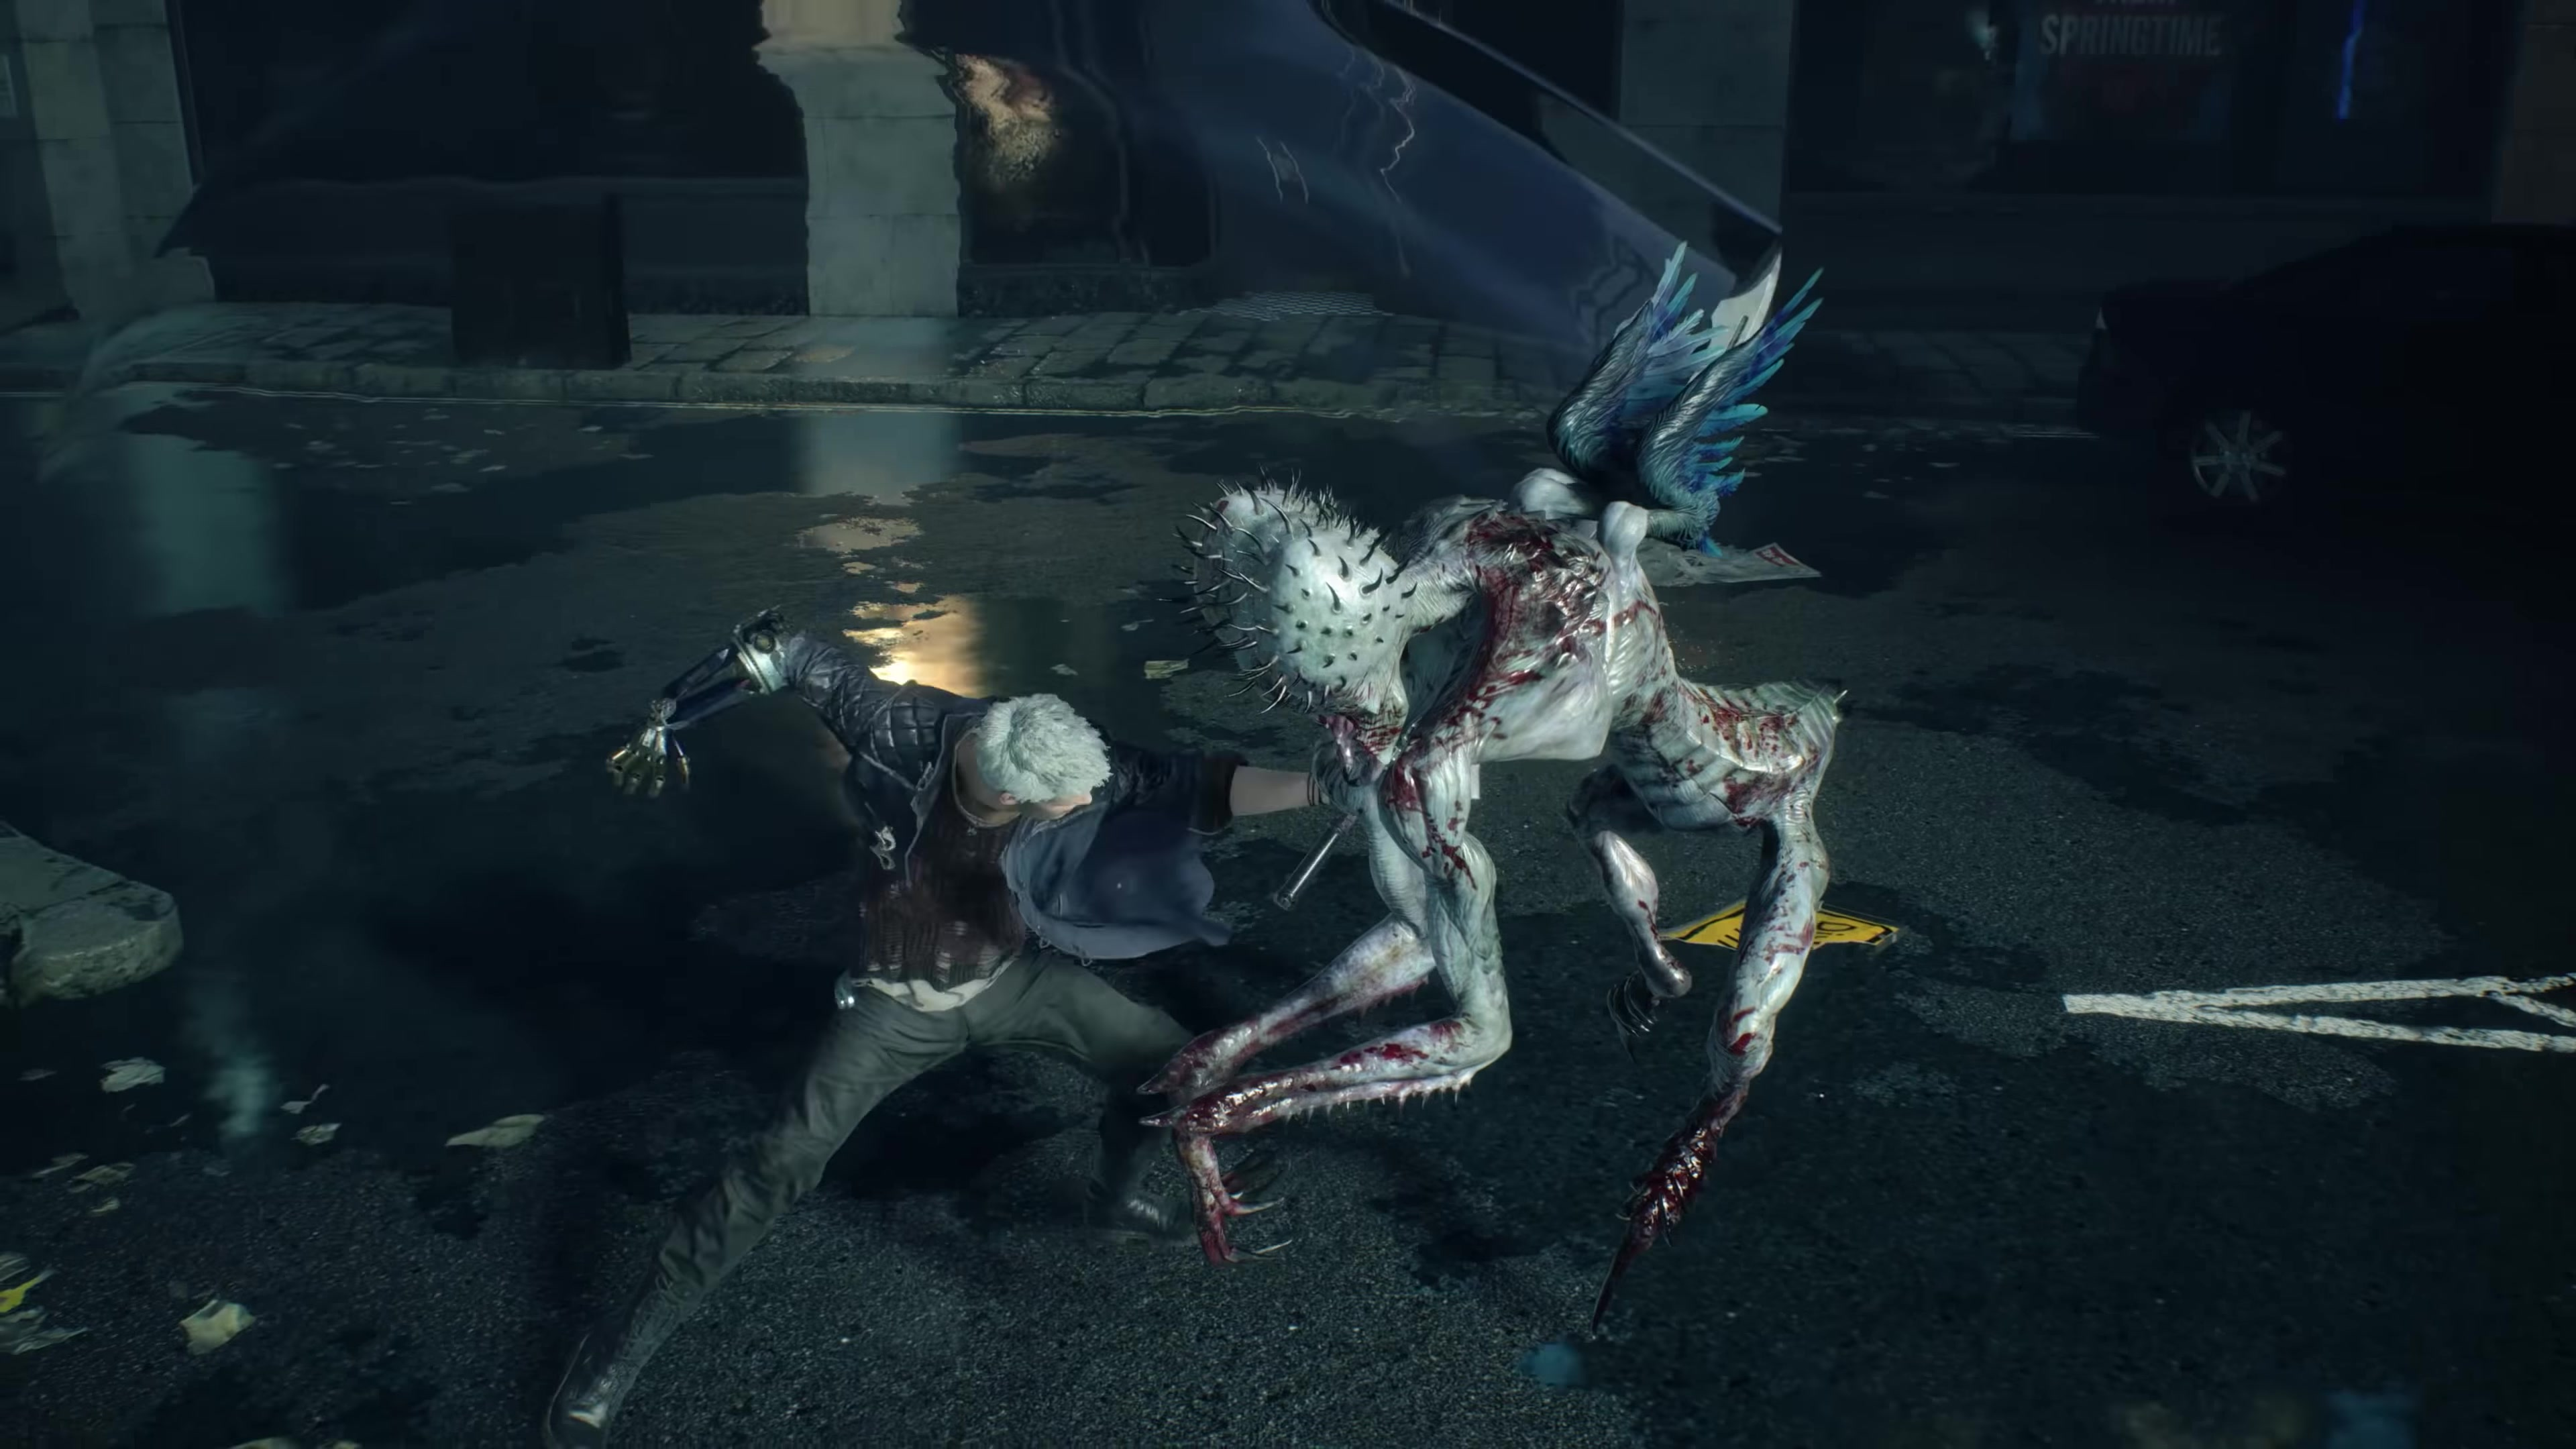 Devil May Cry 5 078.jpg - Devil May Cry 5